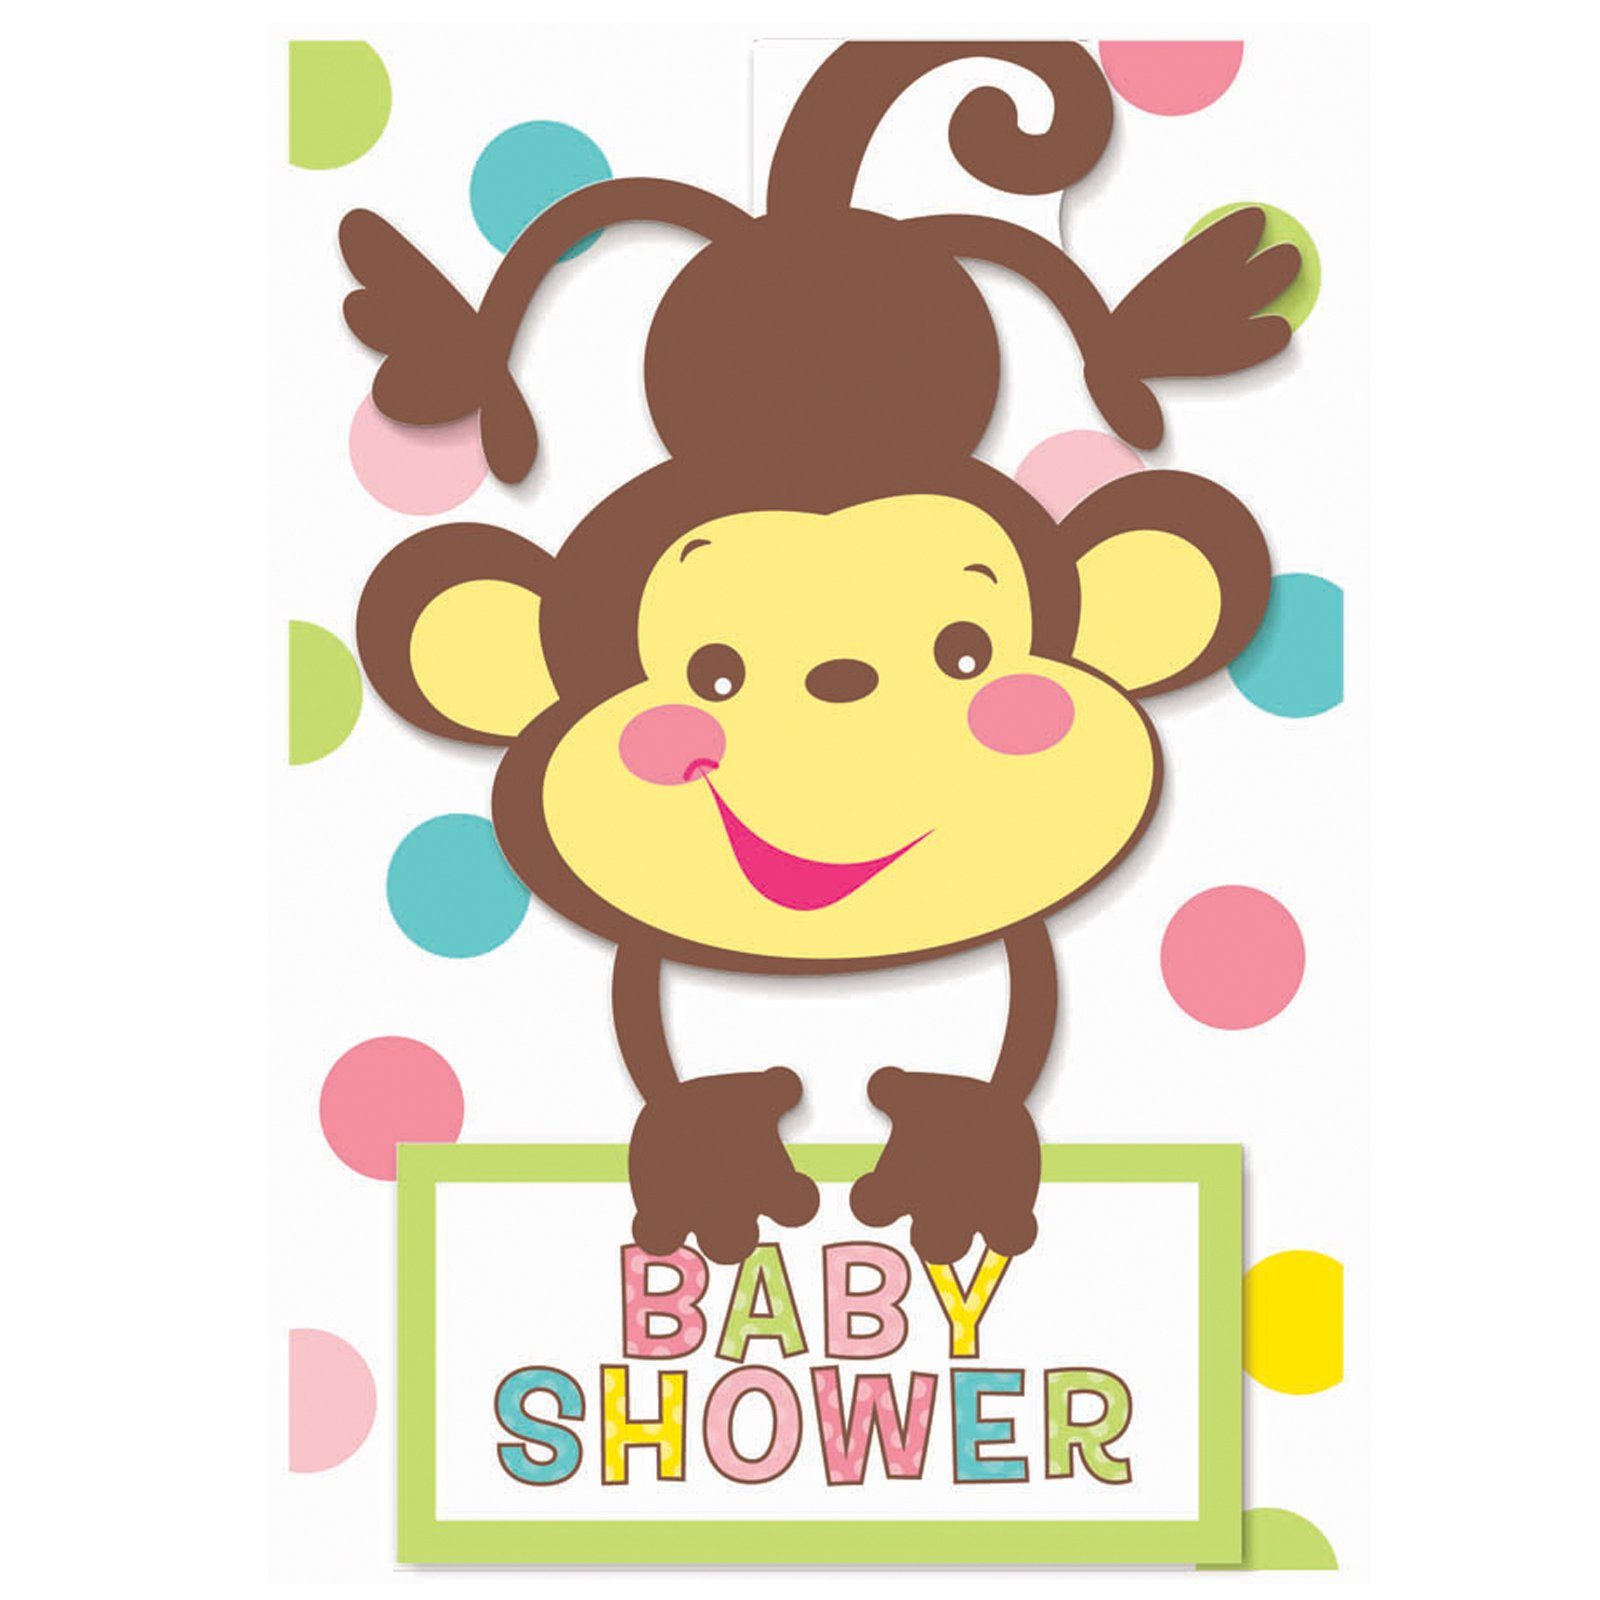 Baby shower jungle theme clipart banner royalty free Photo : Fisher Price Jungle Theme Image banner royalty free